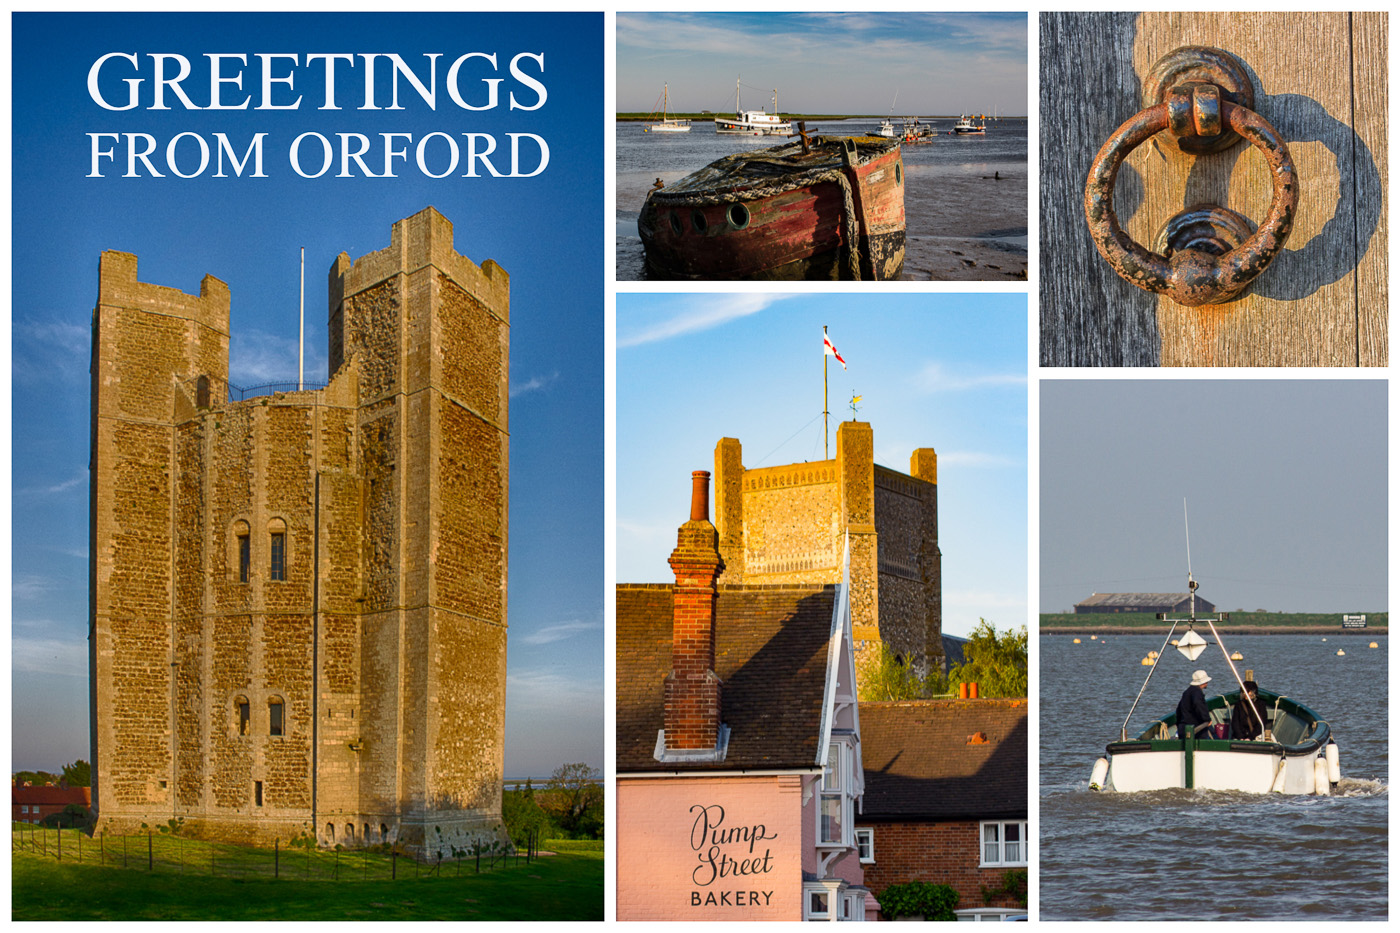 A Postcard from Orford